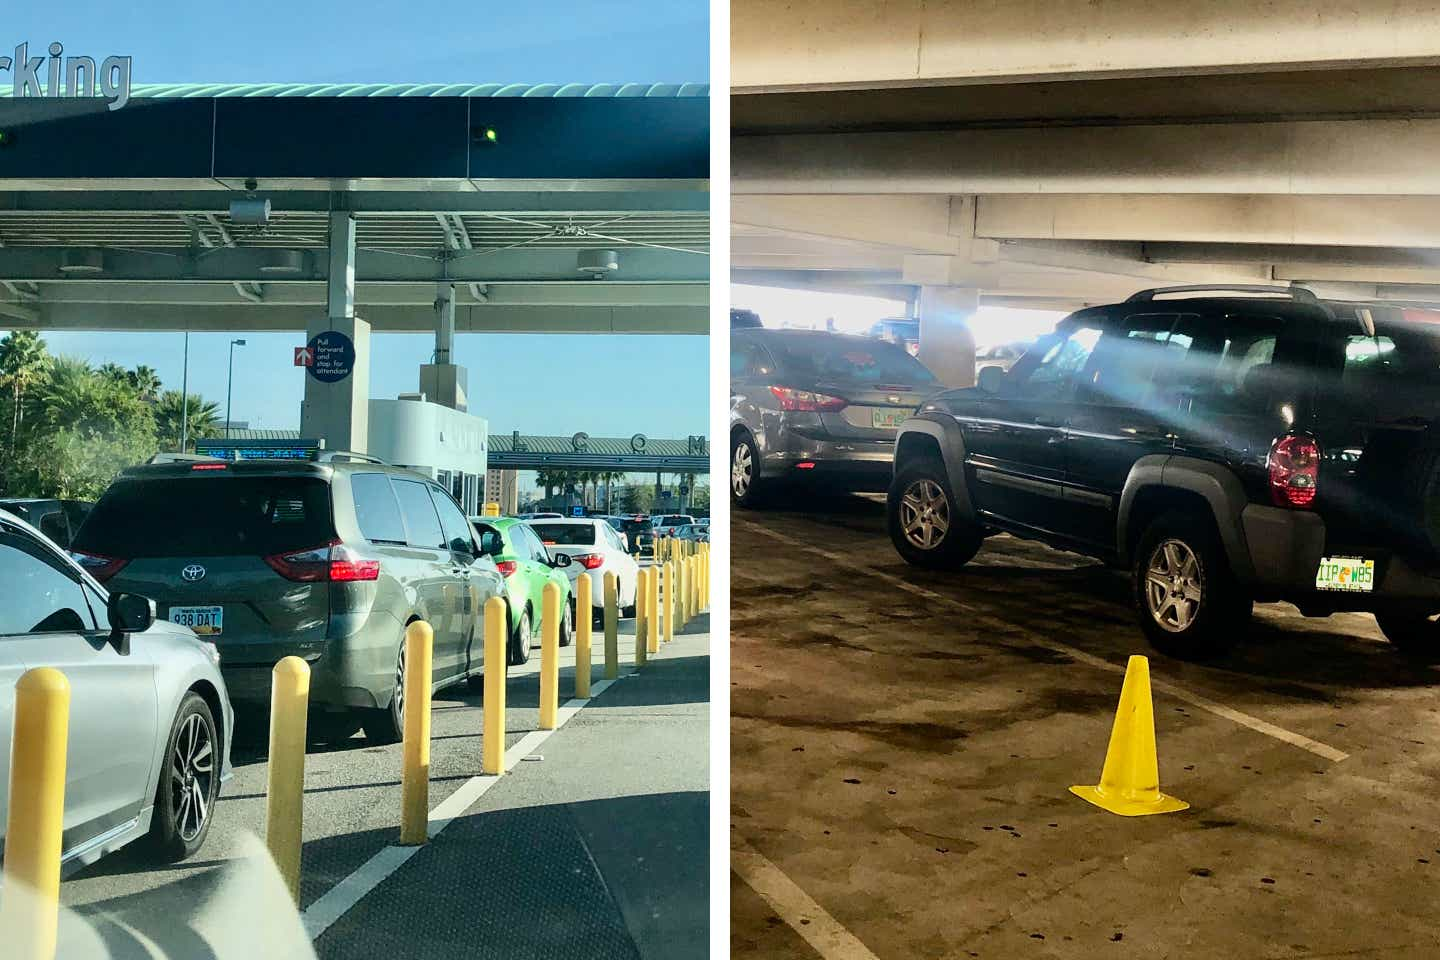 Left: Cars line up at the entrance gate for Universal Orlandos parking garage. Right: Cars are parked in every other parking space with cones to enforce social distance.